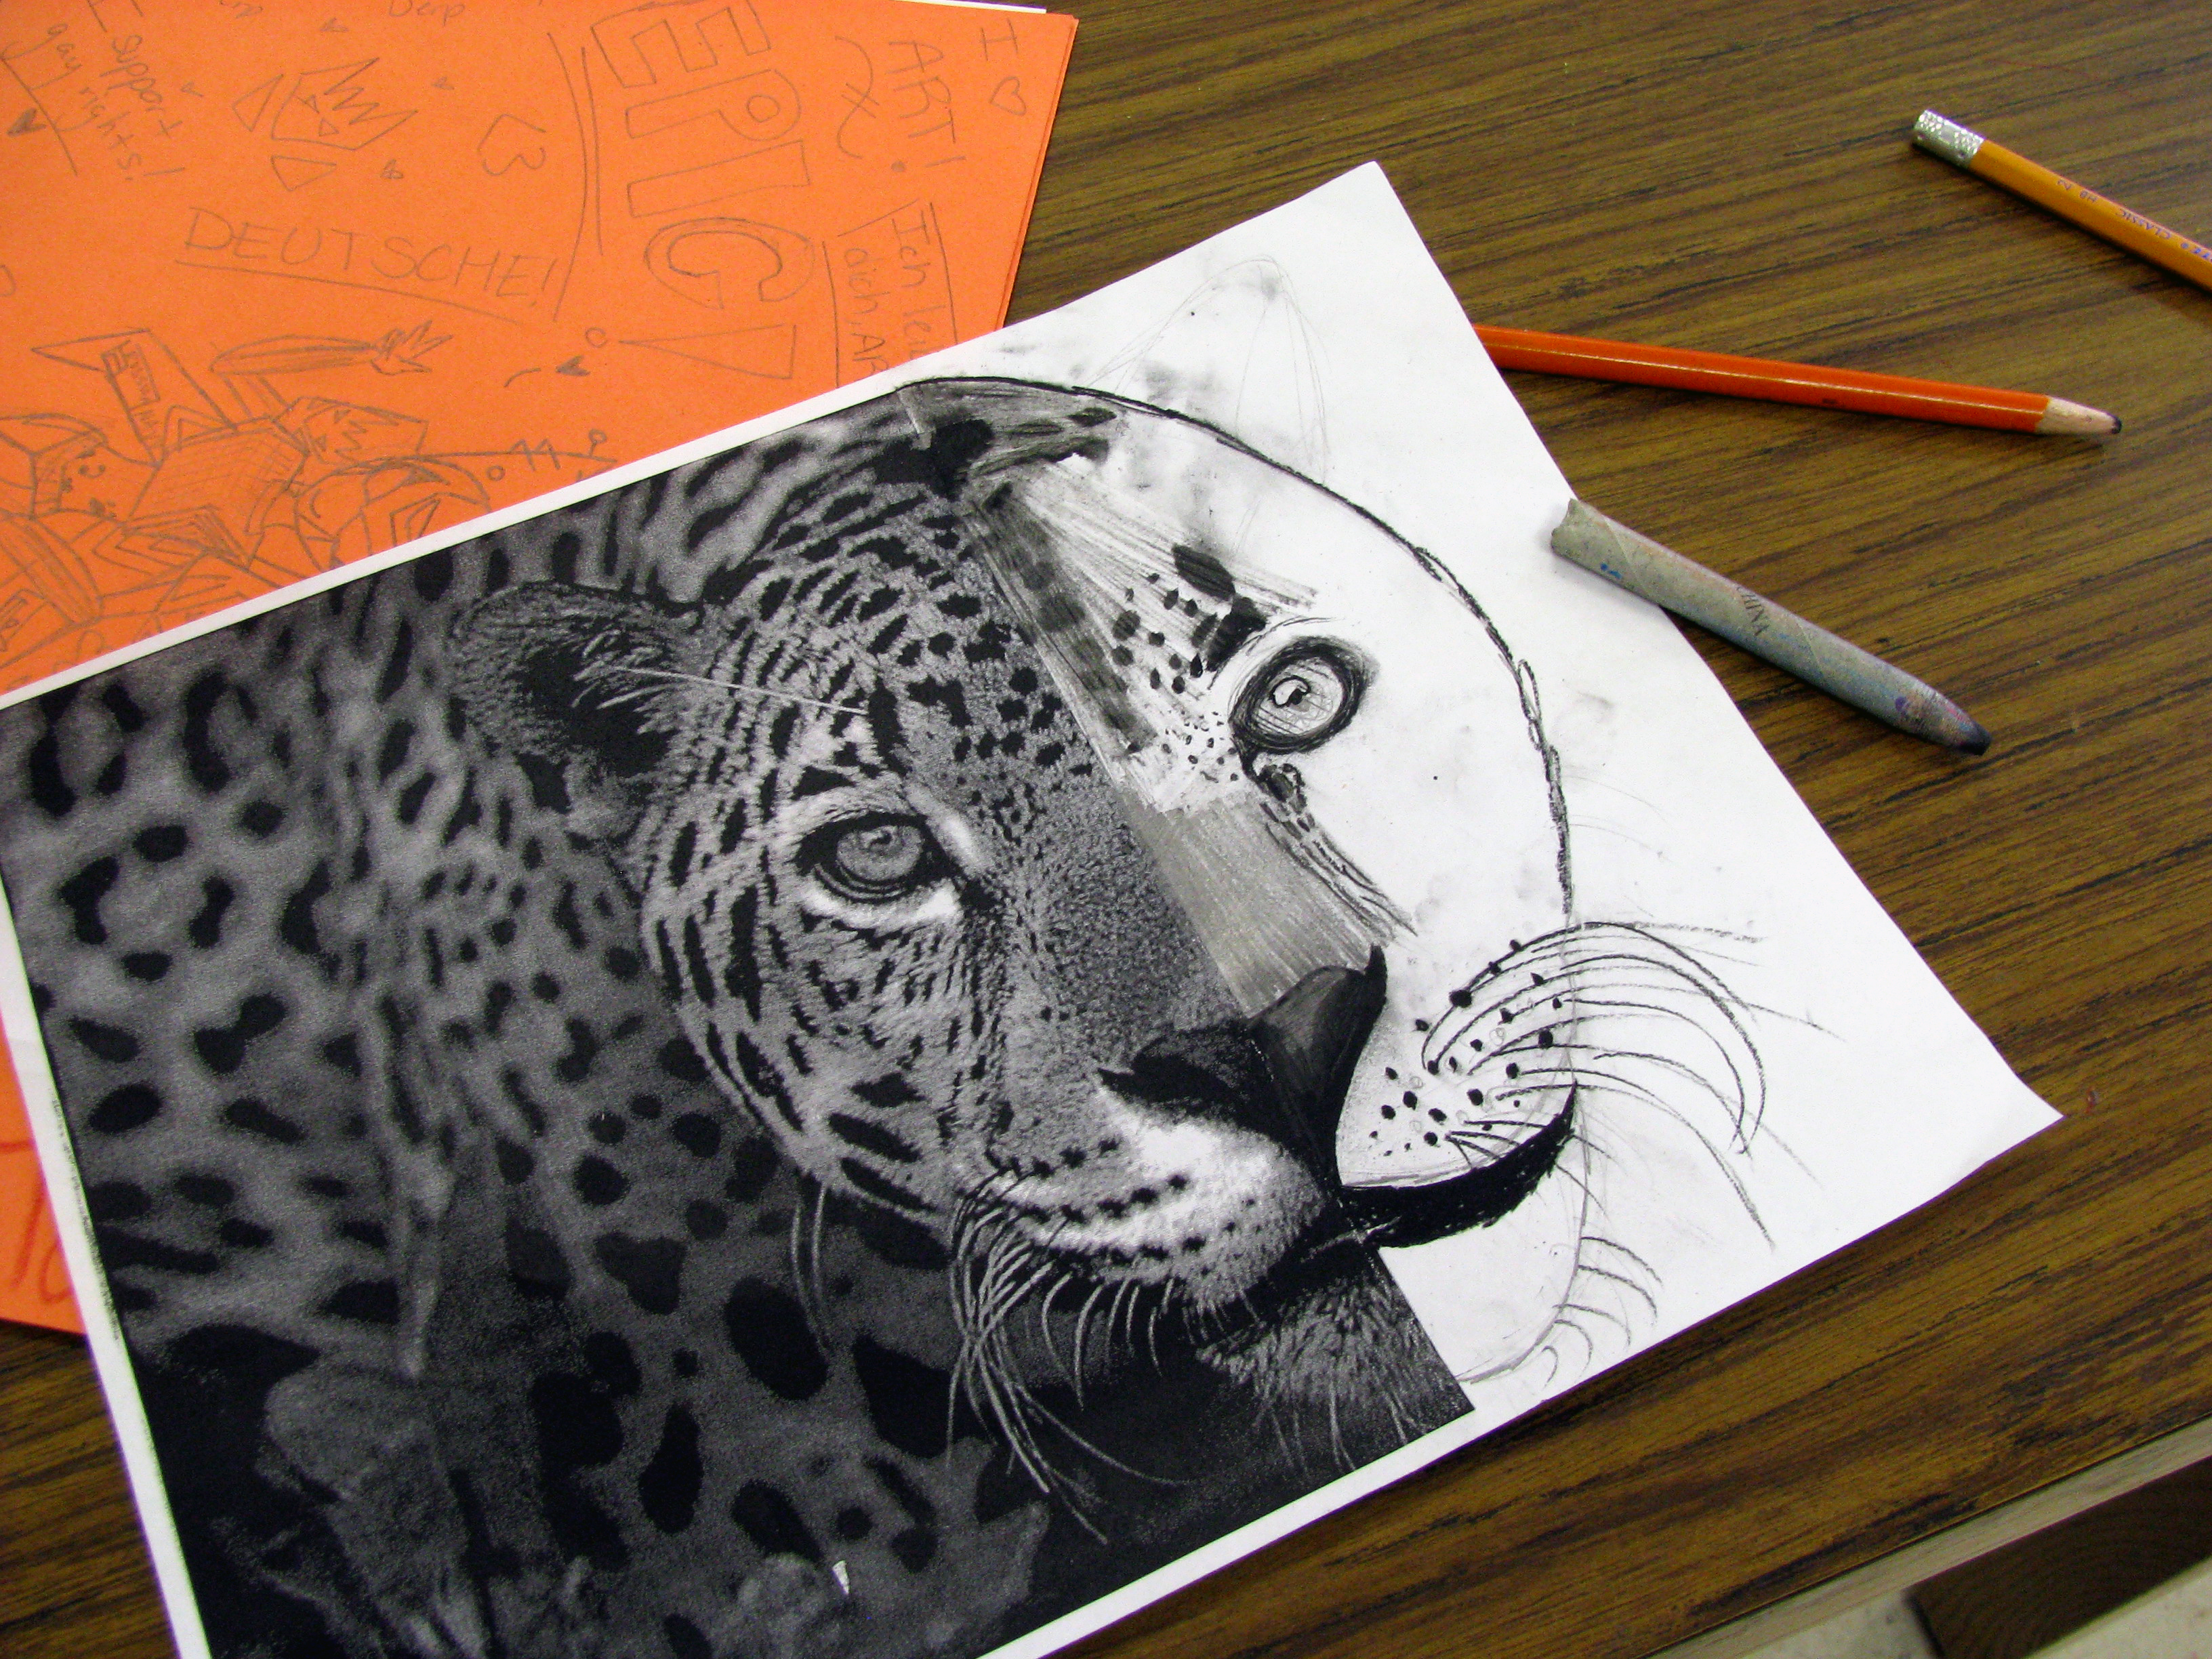 3264x2448 Complete The Animal Charcoal Drawing Mrs. Bearden's Art Room